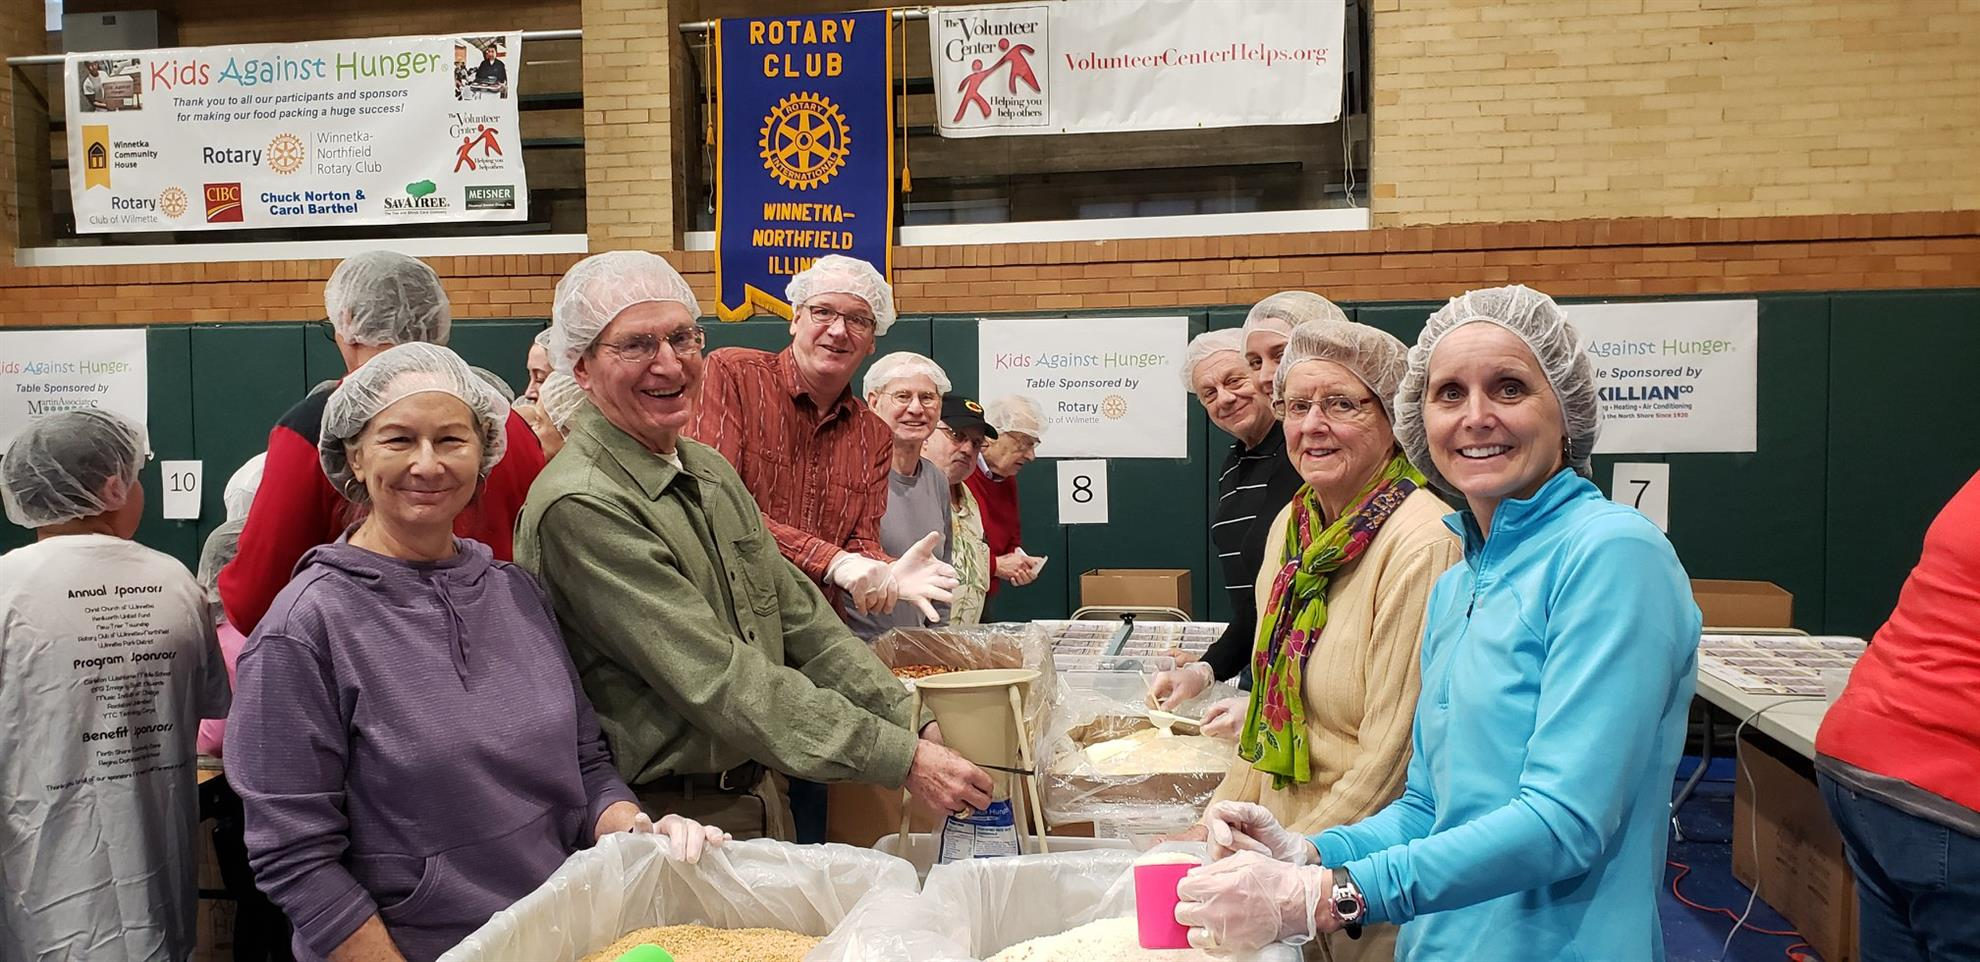 Stories | The Rotary Club of Wilmette